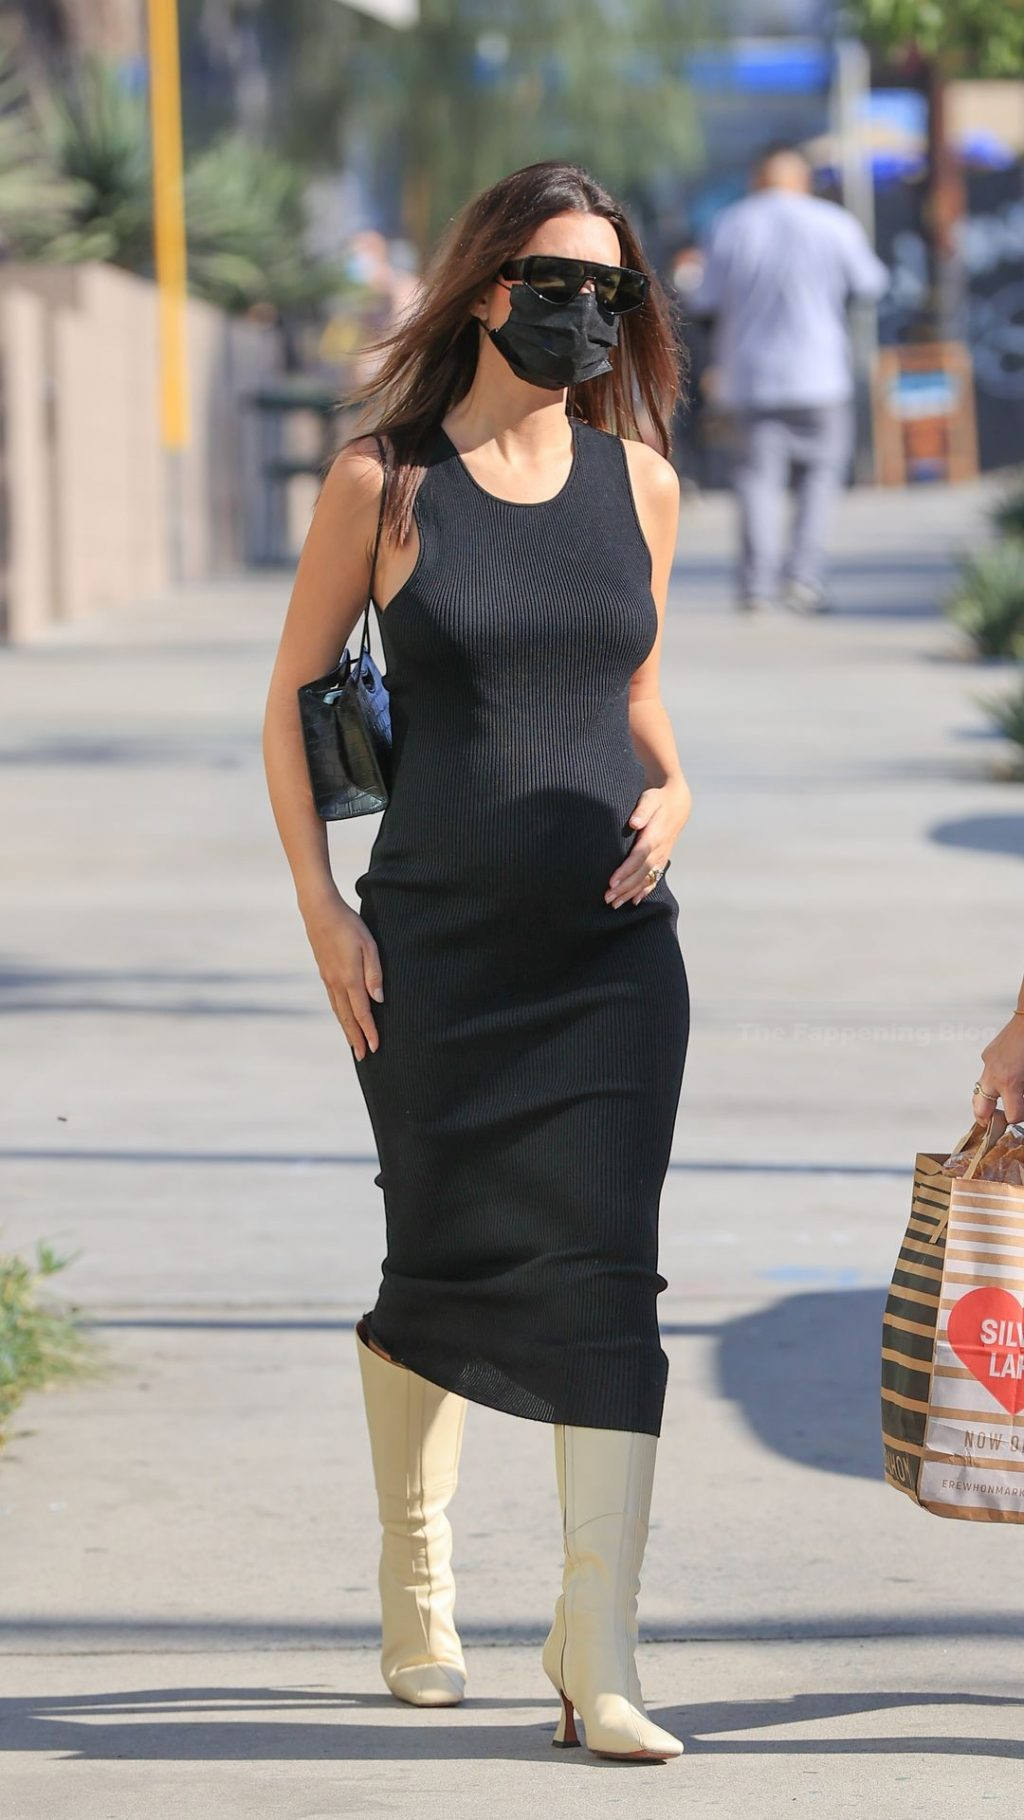 Emily Ratajkowski Shows Off Her Growing Tits and Baby Bump in a Black Dress (23 Photos)